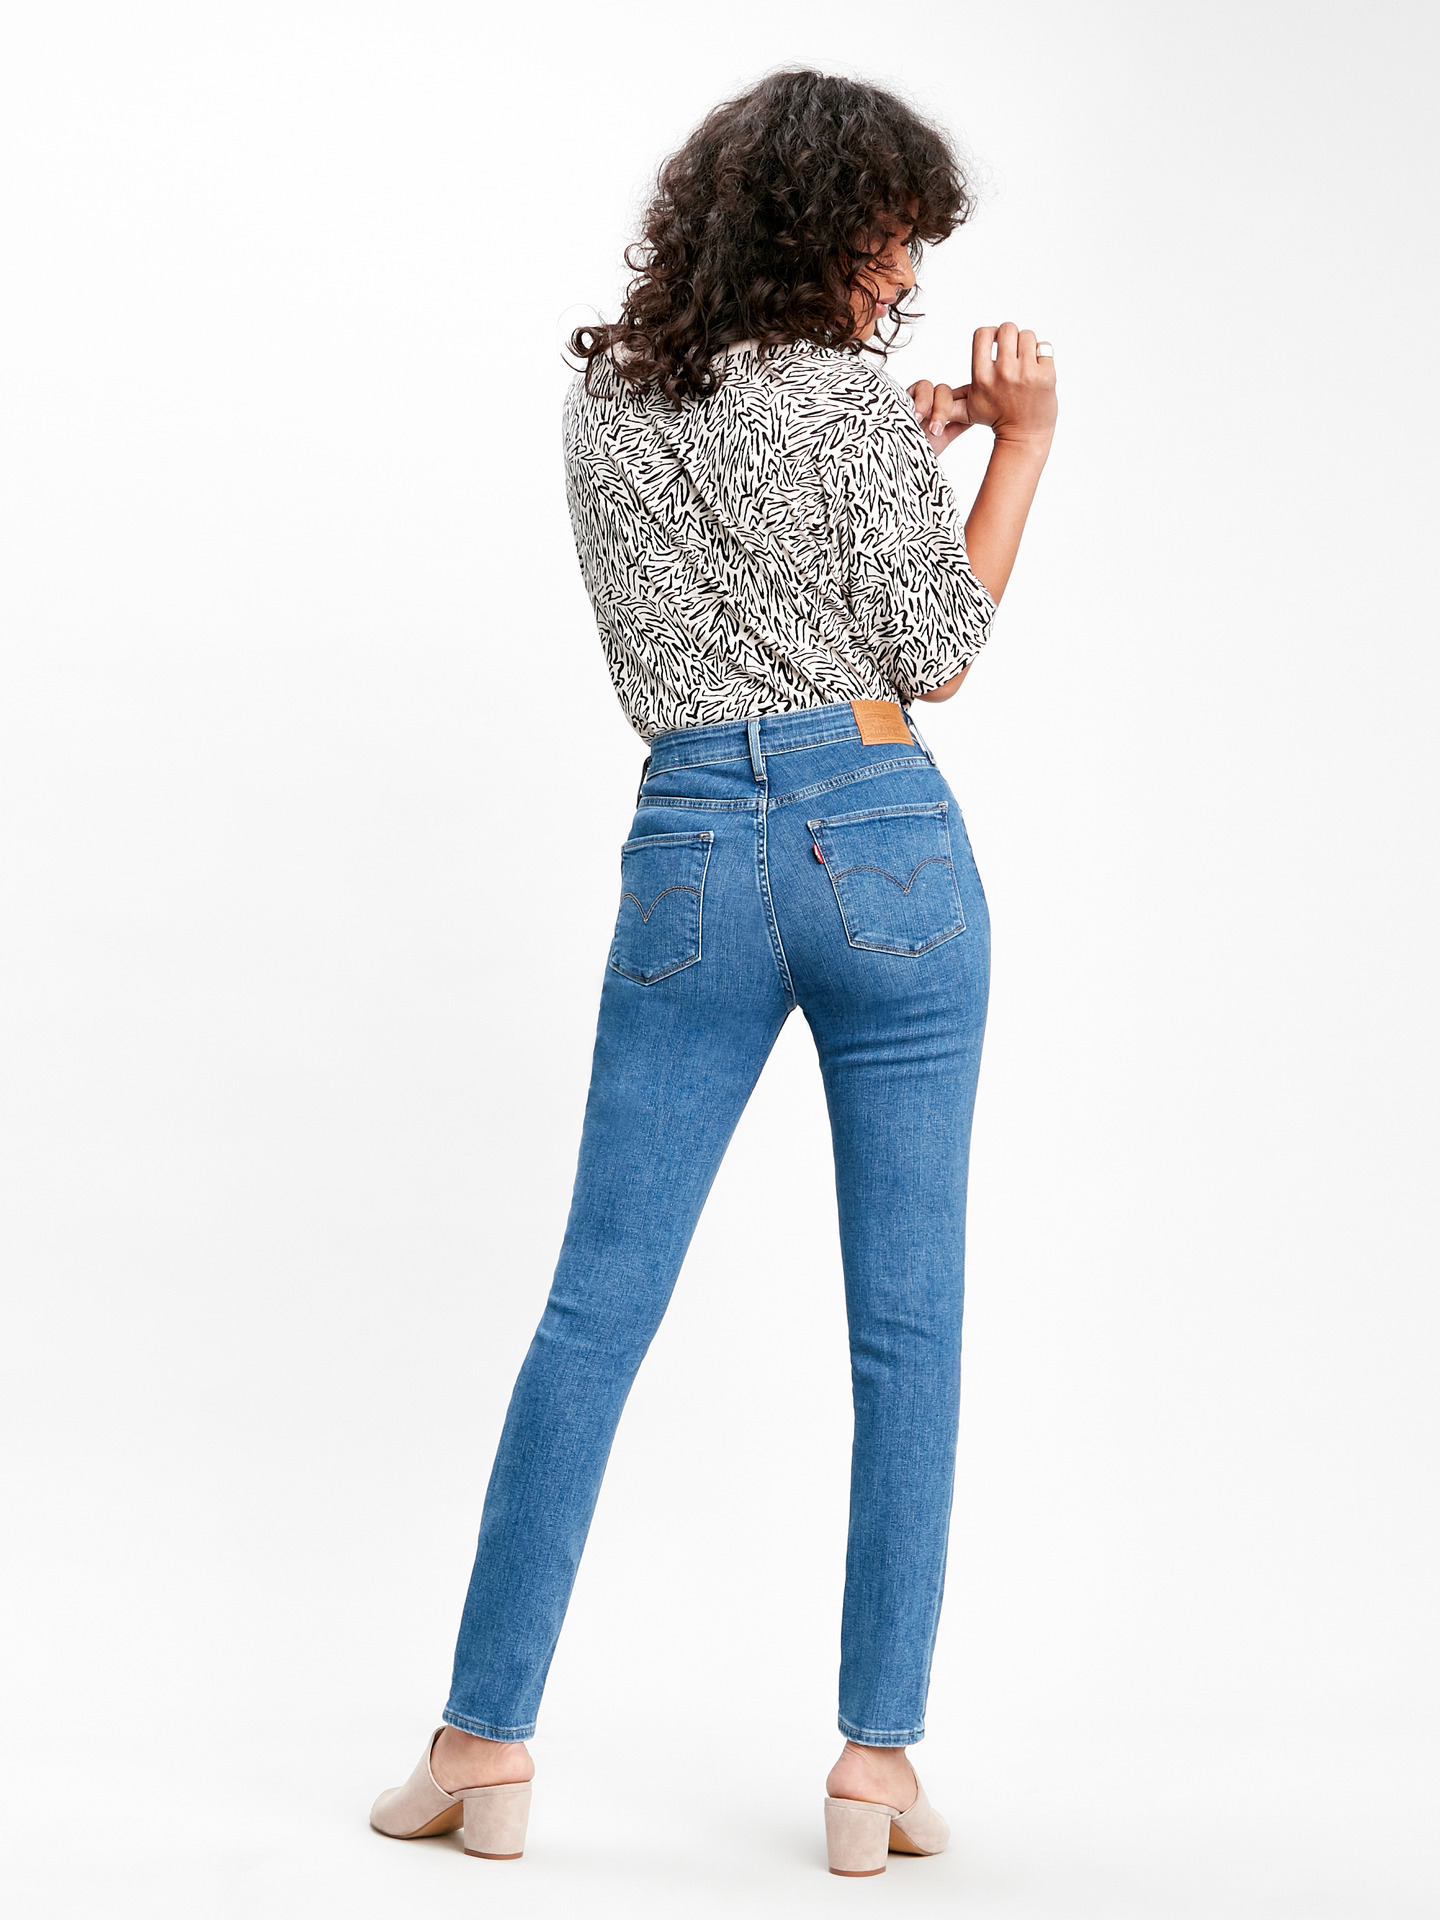 721™ High Rise Skinny Jeans Levi's® (4)